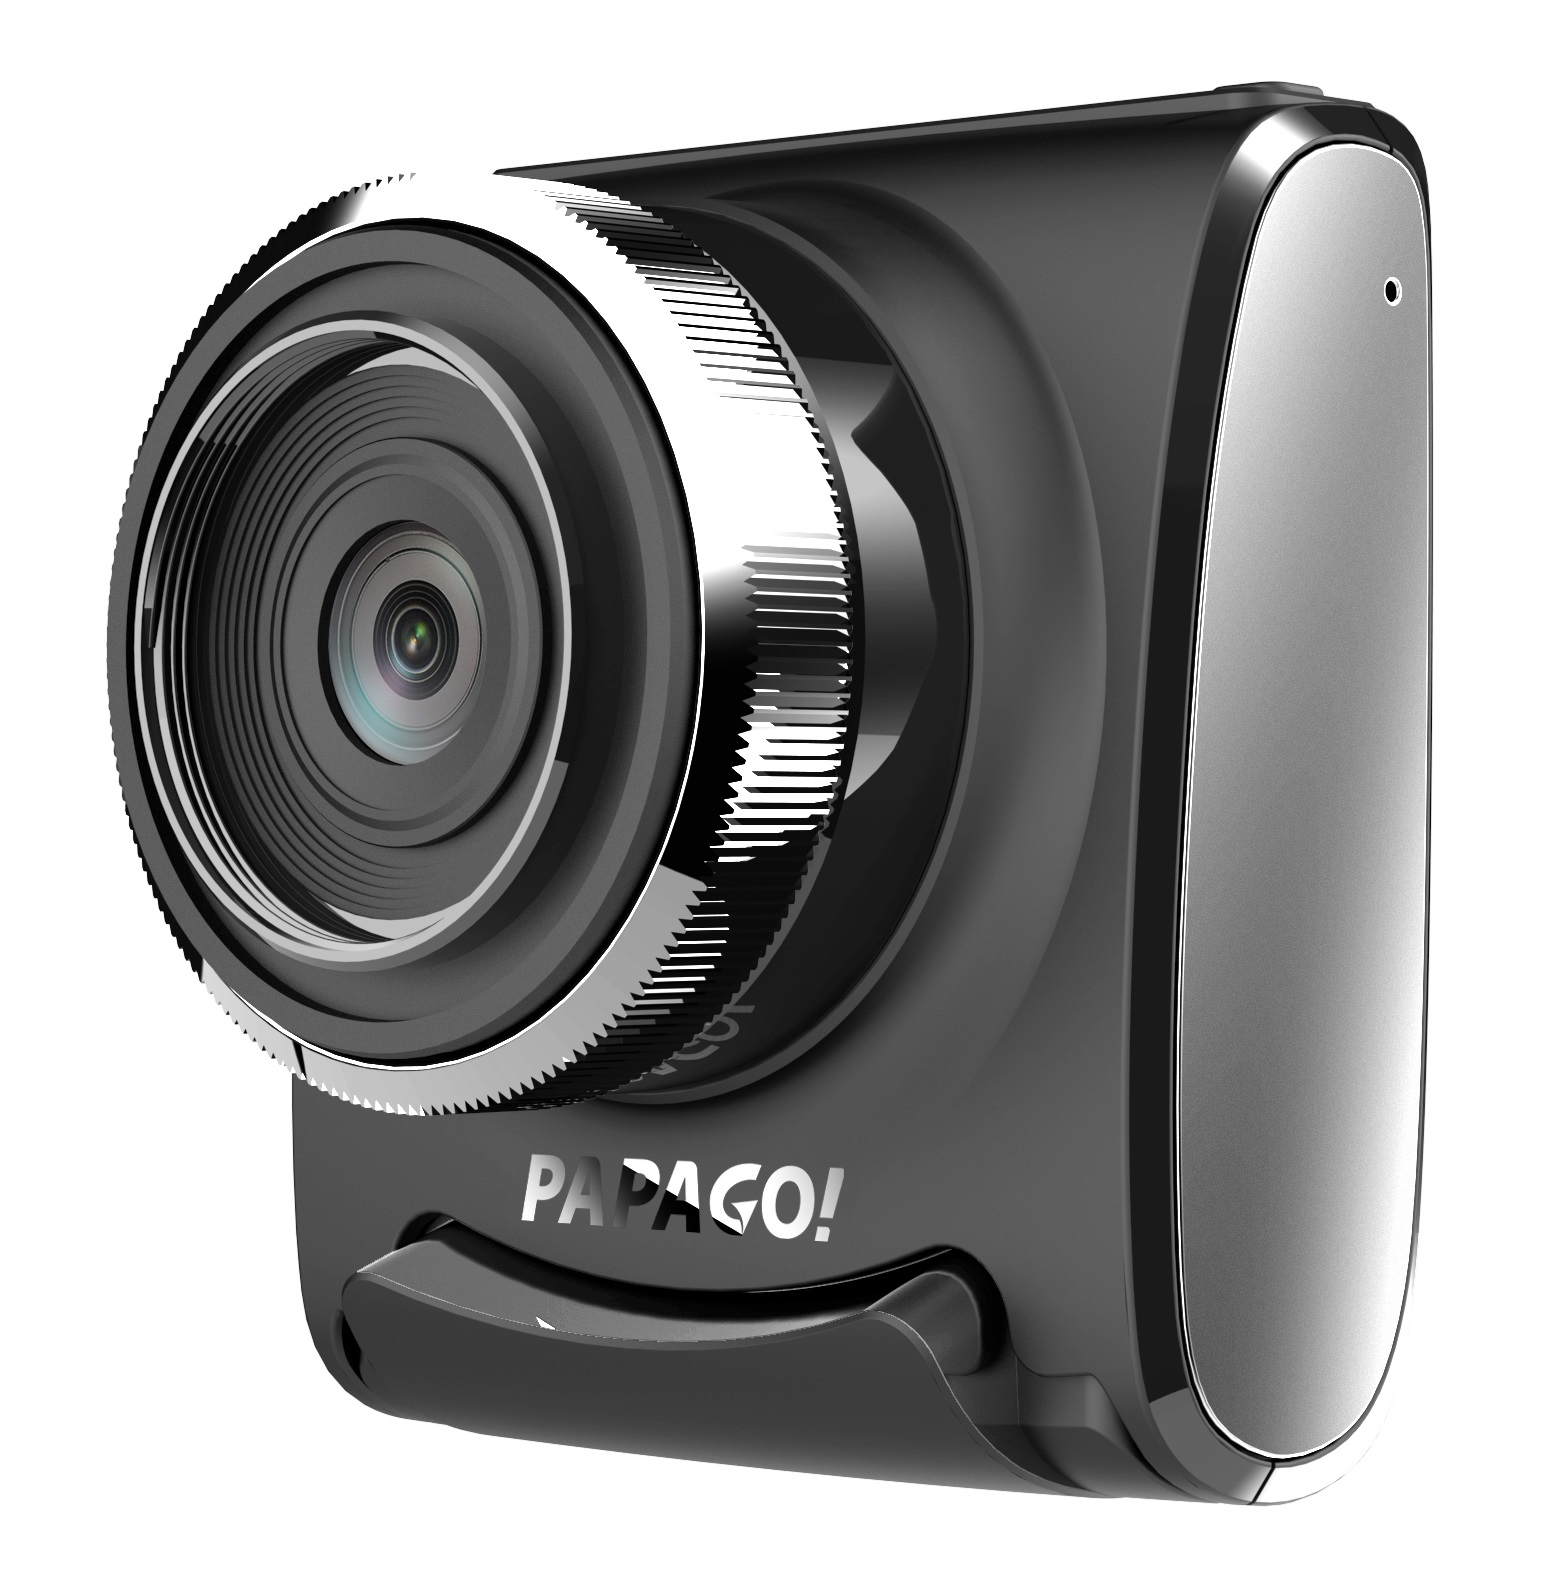 PAPAGO! GoSafe 200 Dash Cam Review